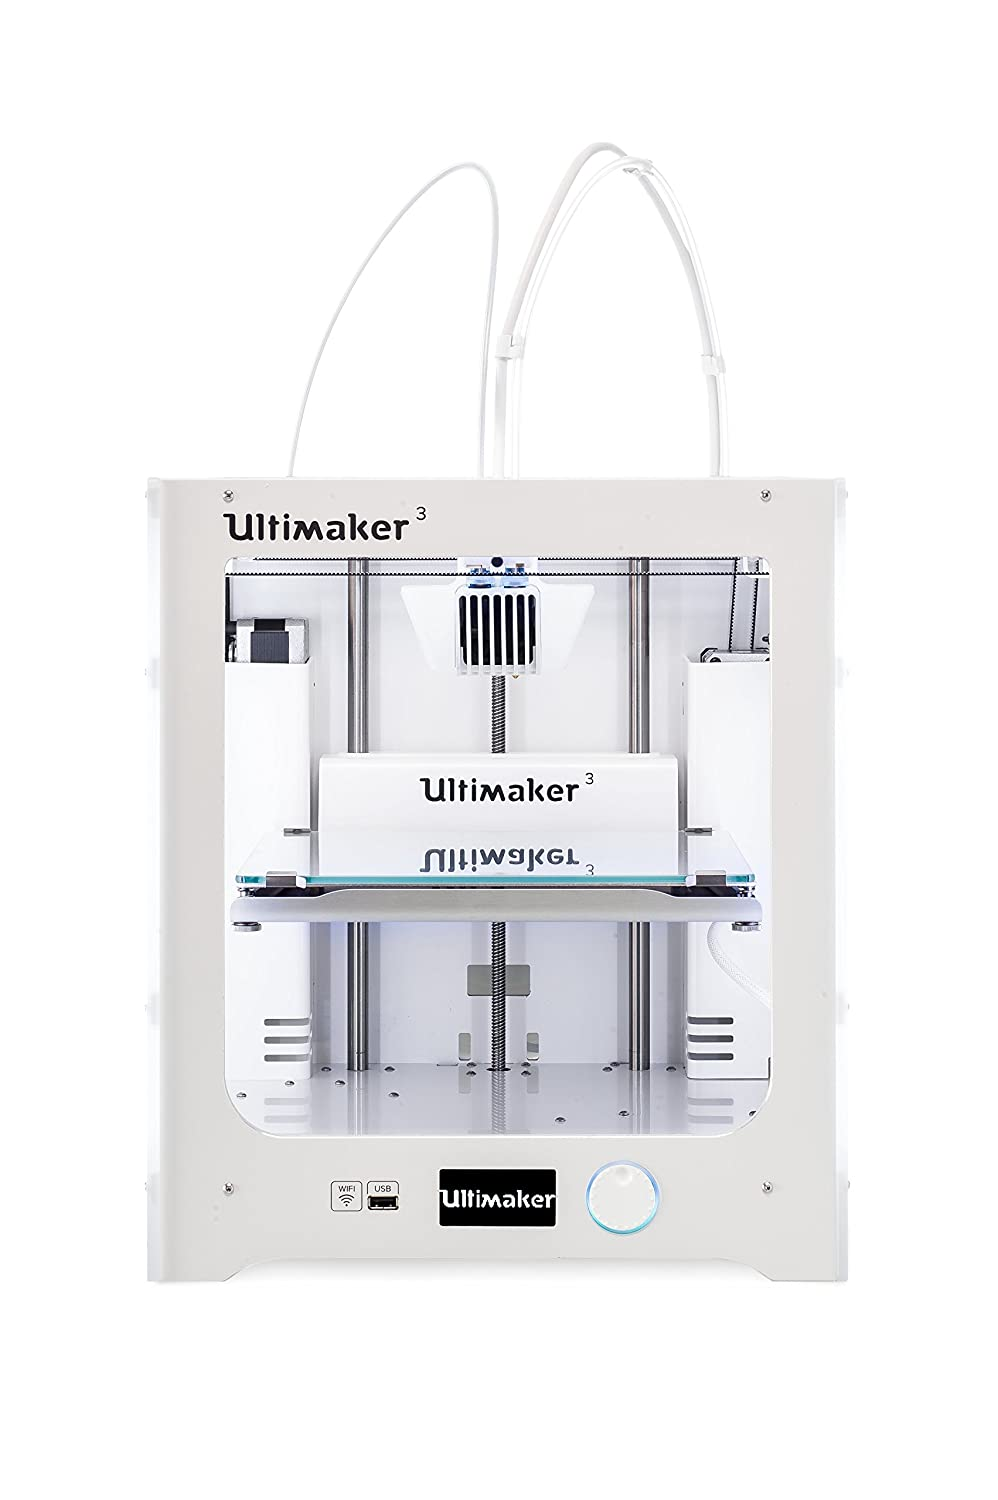 Impresora 3D Ultimaker 3 de doble extrusor: Amazon.es: Industria ...